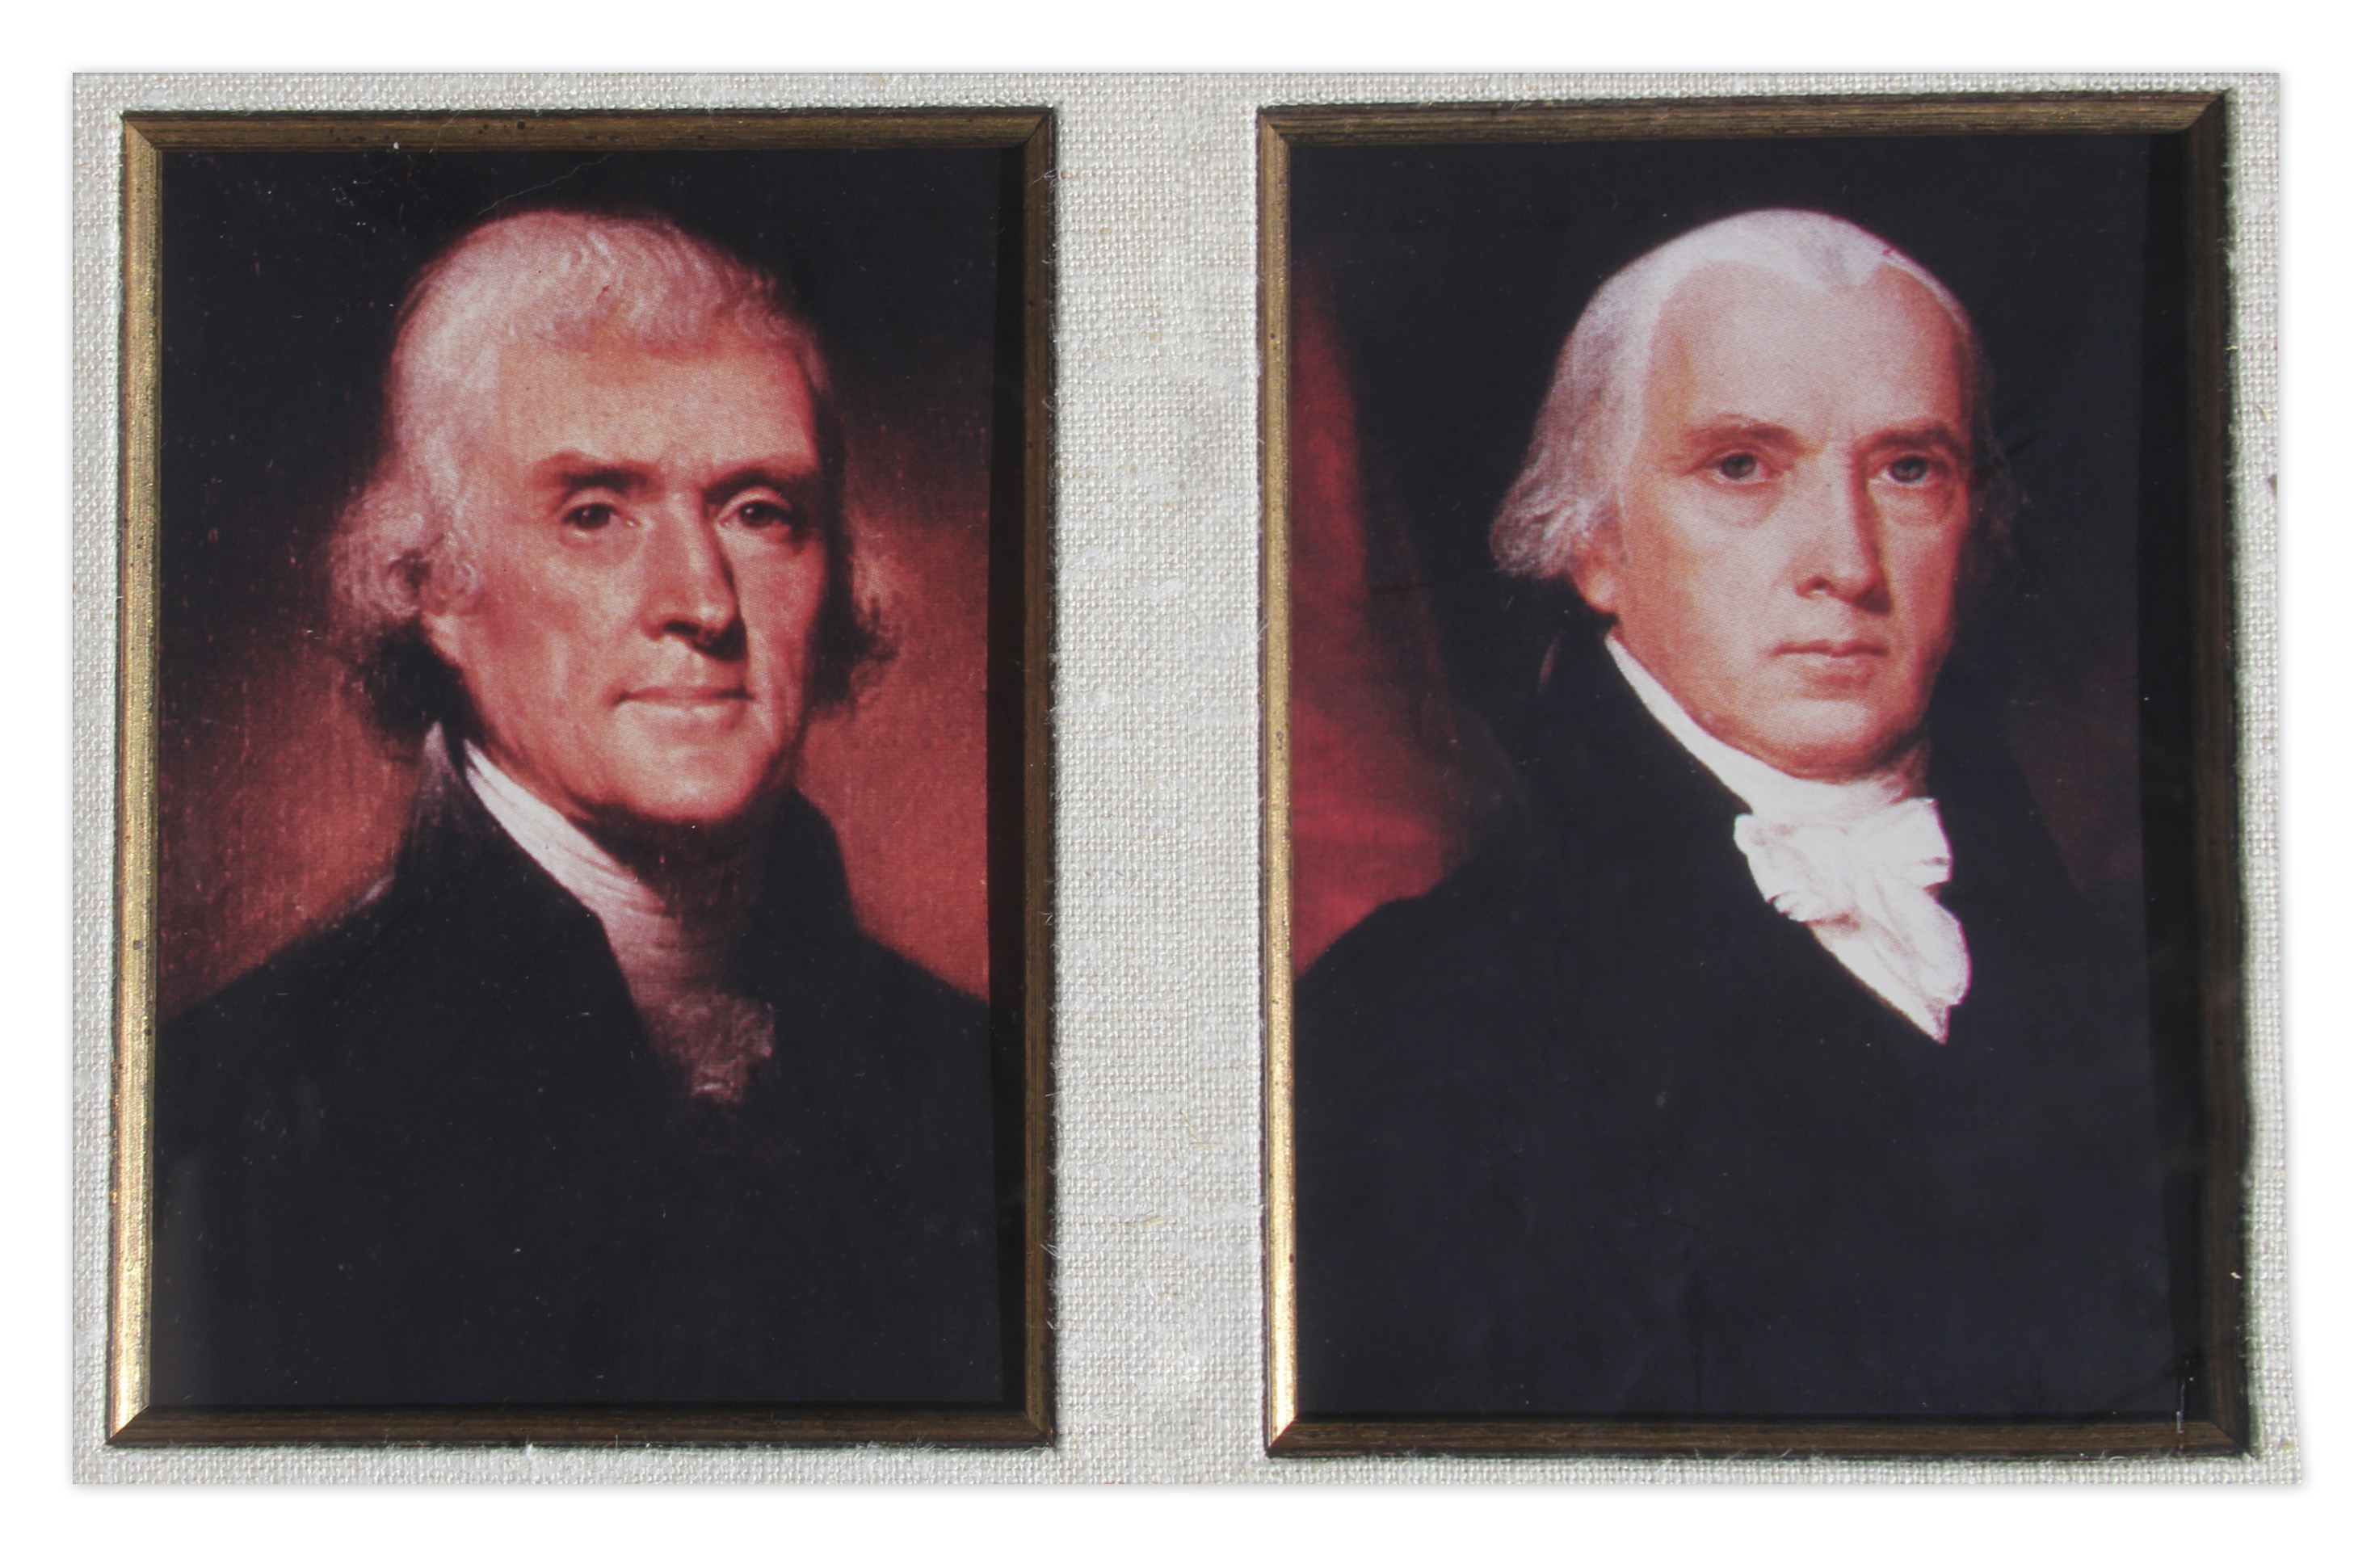 thomas jeffersons presidency essay In this essay, richard dixon, editor of jefferson notes, chronicles the events  to  w mckenzie wallenborn, president of the thomas jefferson heritage society,.